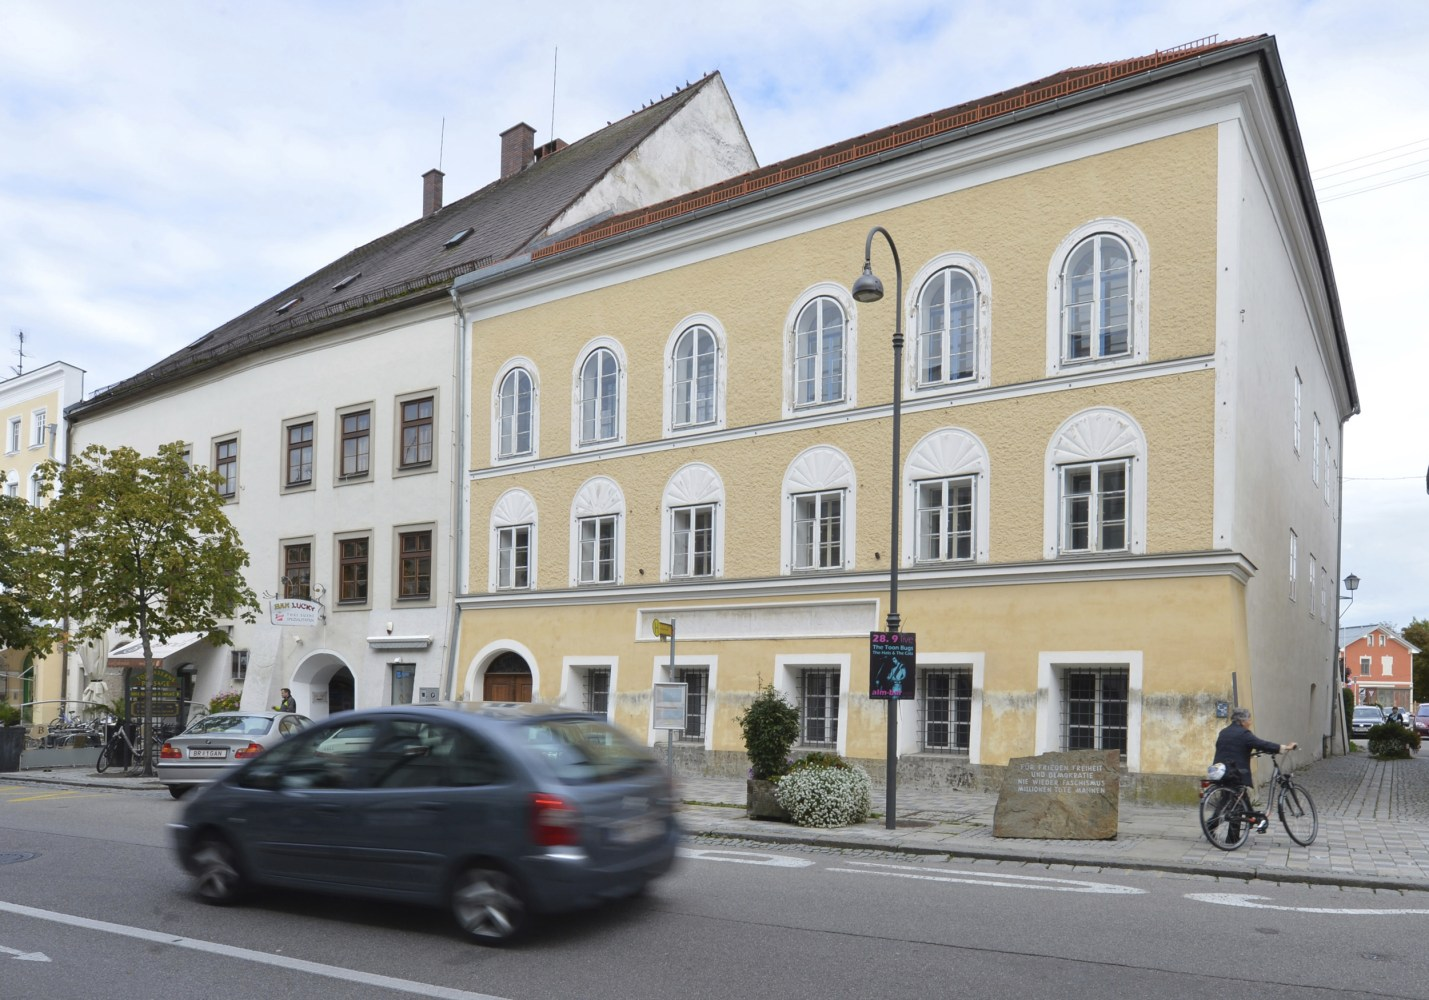 Austria government says house of Hitler's birth to be demolished